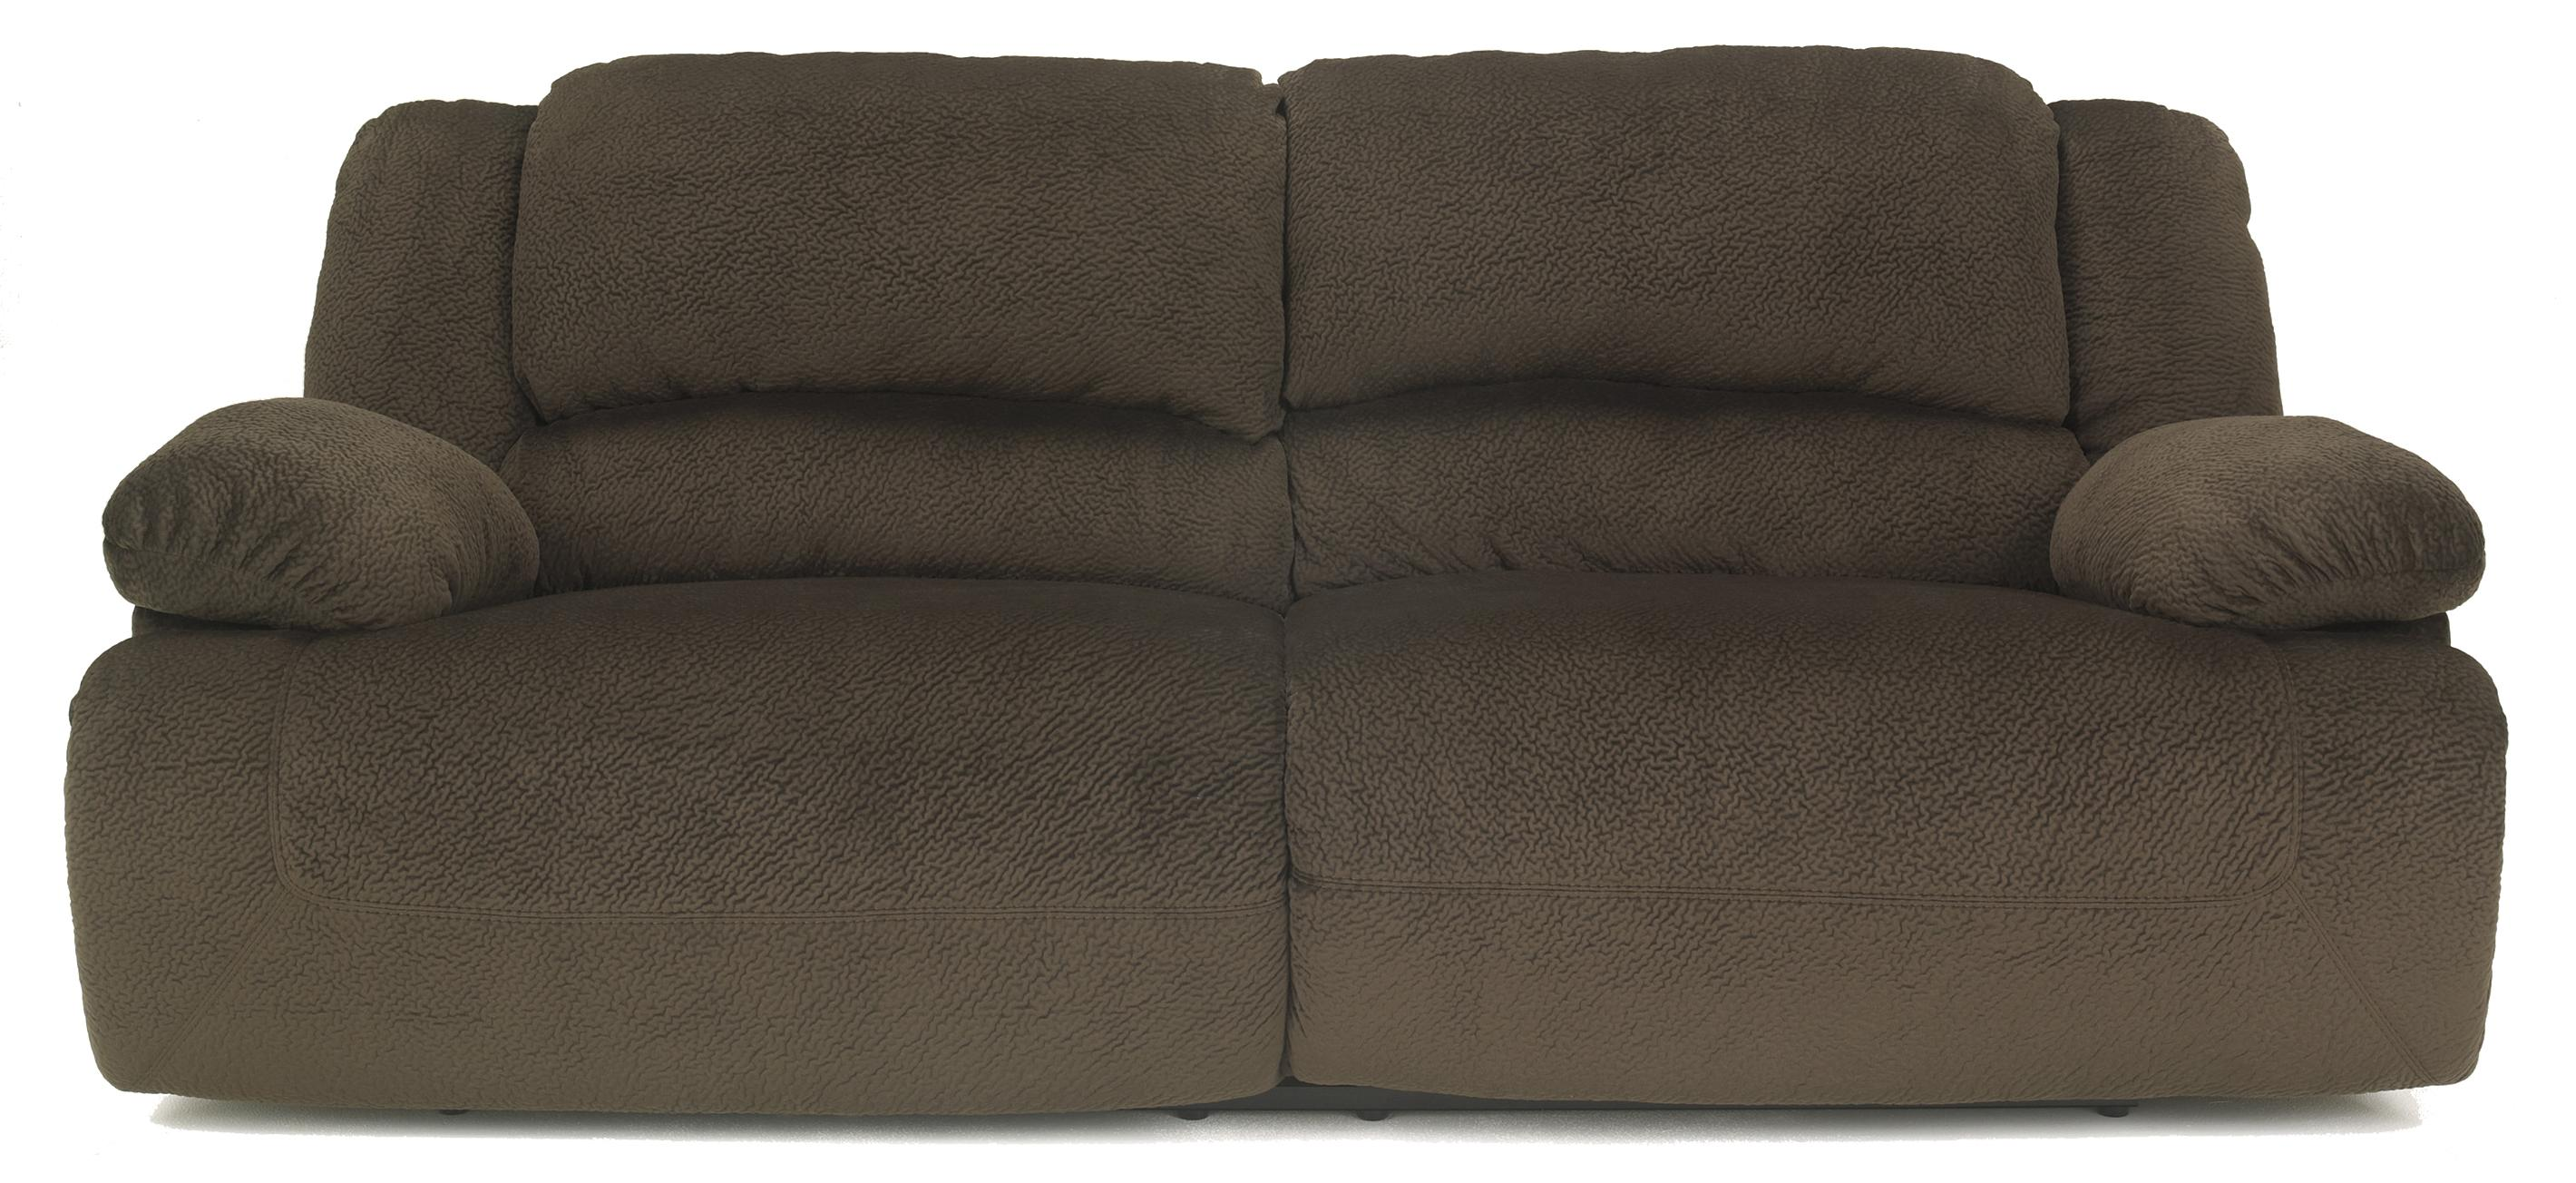 Signature Design by Ashley Toletta - Chocolate 2 Seat Reclining Power Sofa - Item Number: 5670147